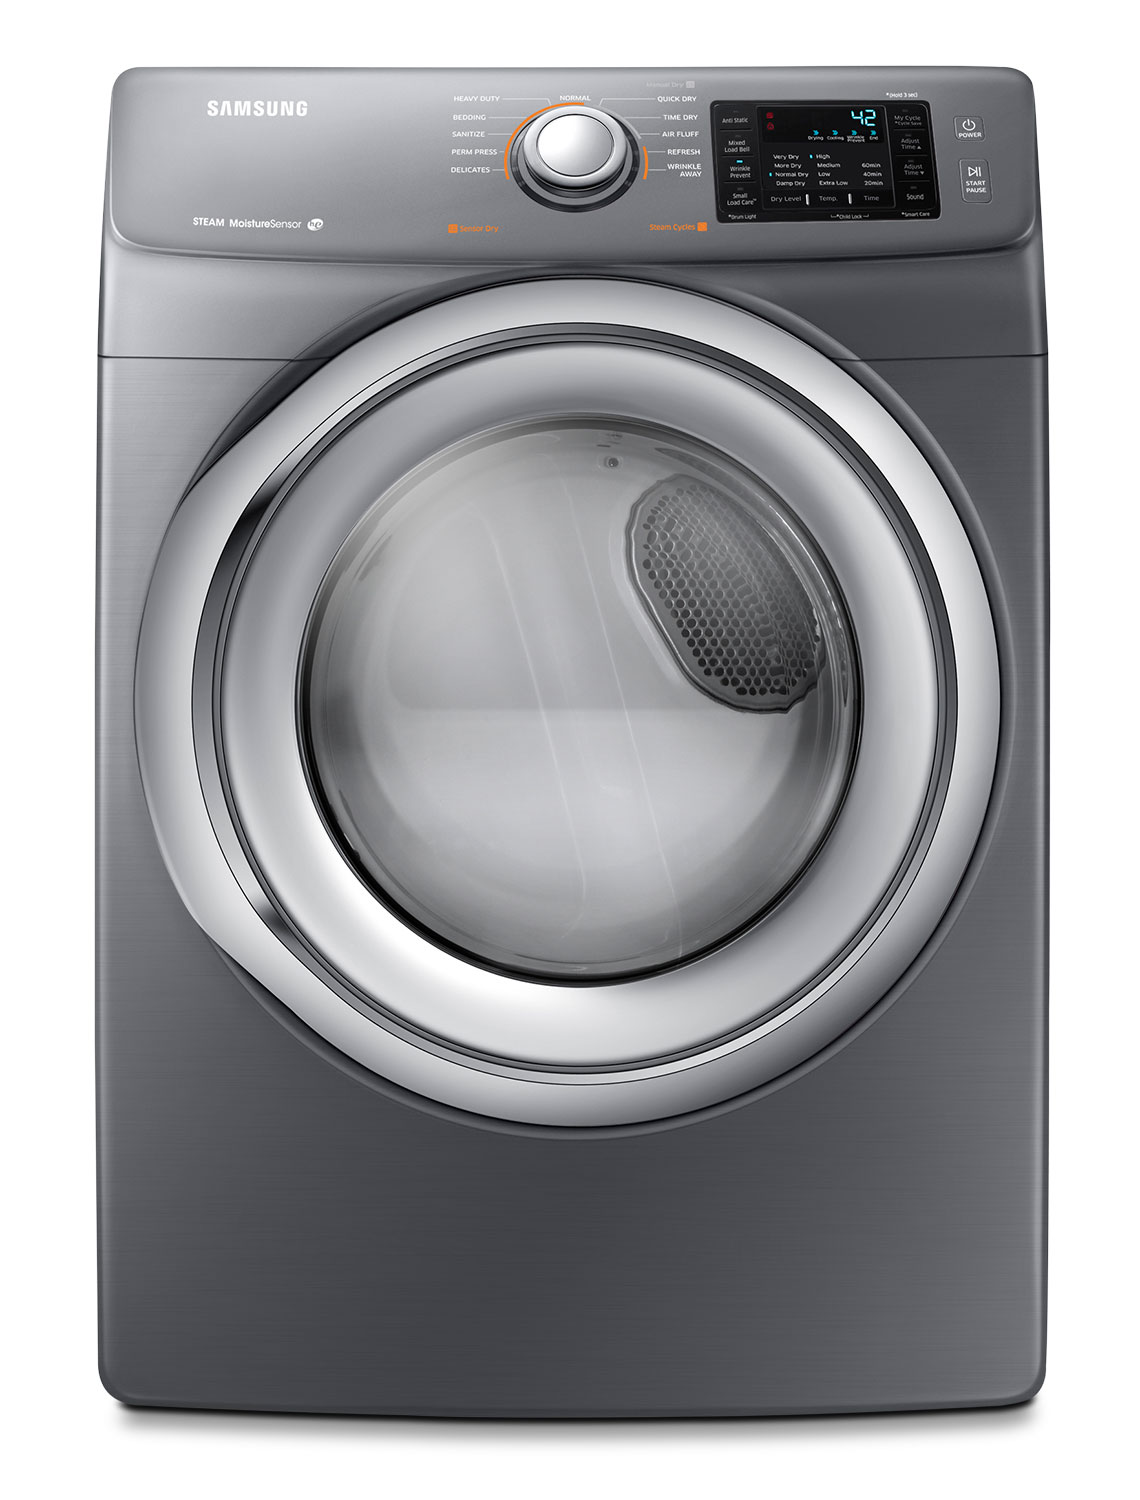 Samsung 7.5 Cu. Ft. Gas Dryer - Platinum